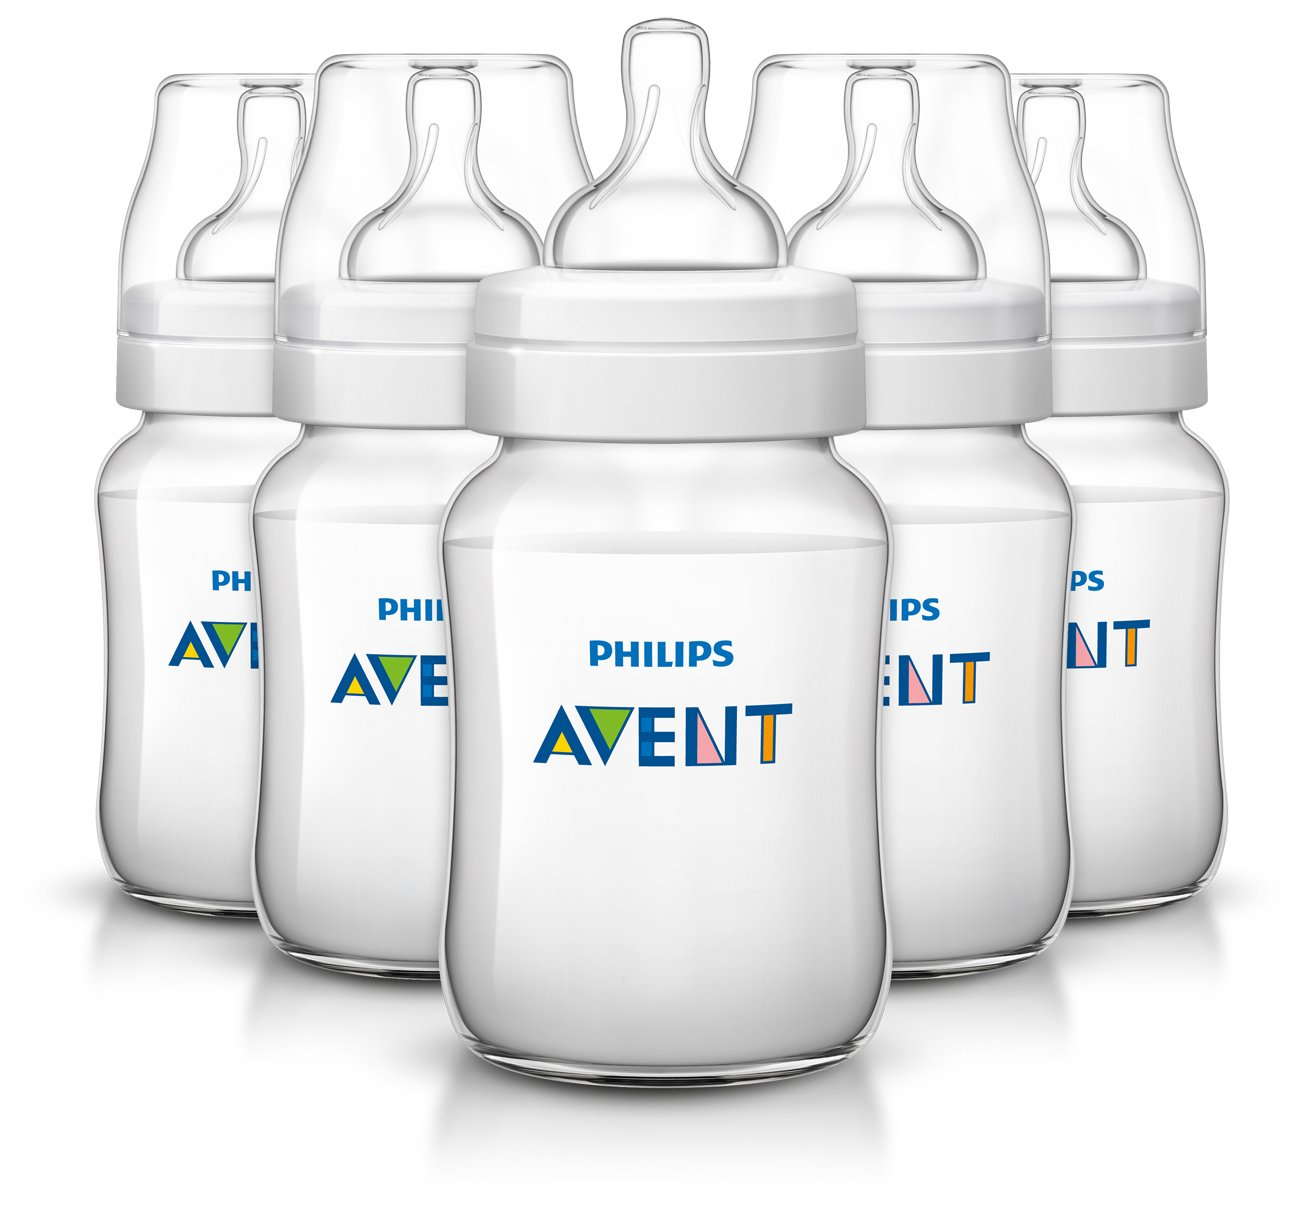 Philips AVENT Classic Plus BPA Free Polypropylene Bottles, 9 Ounce (Pack of 5) by Philips AVENT [並行輸入品]   B00PF8A9YY